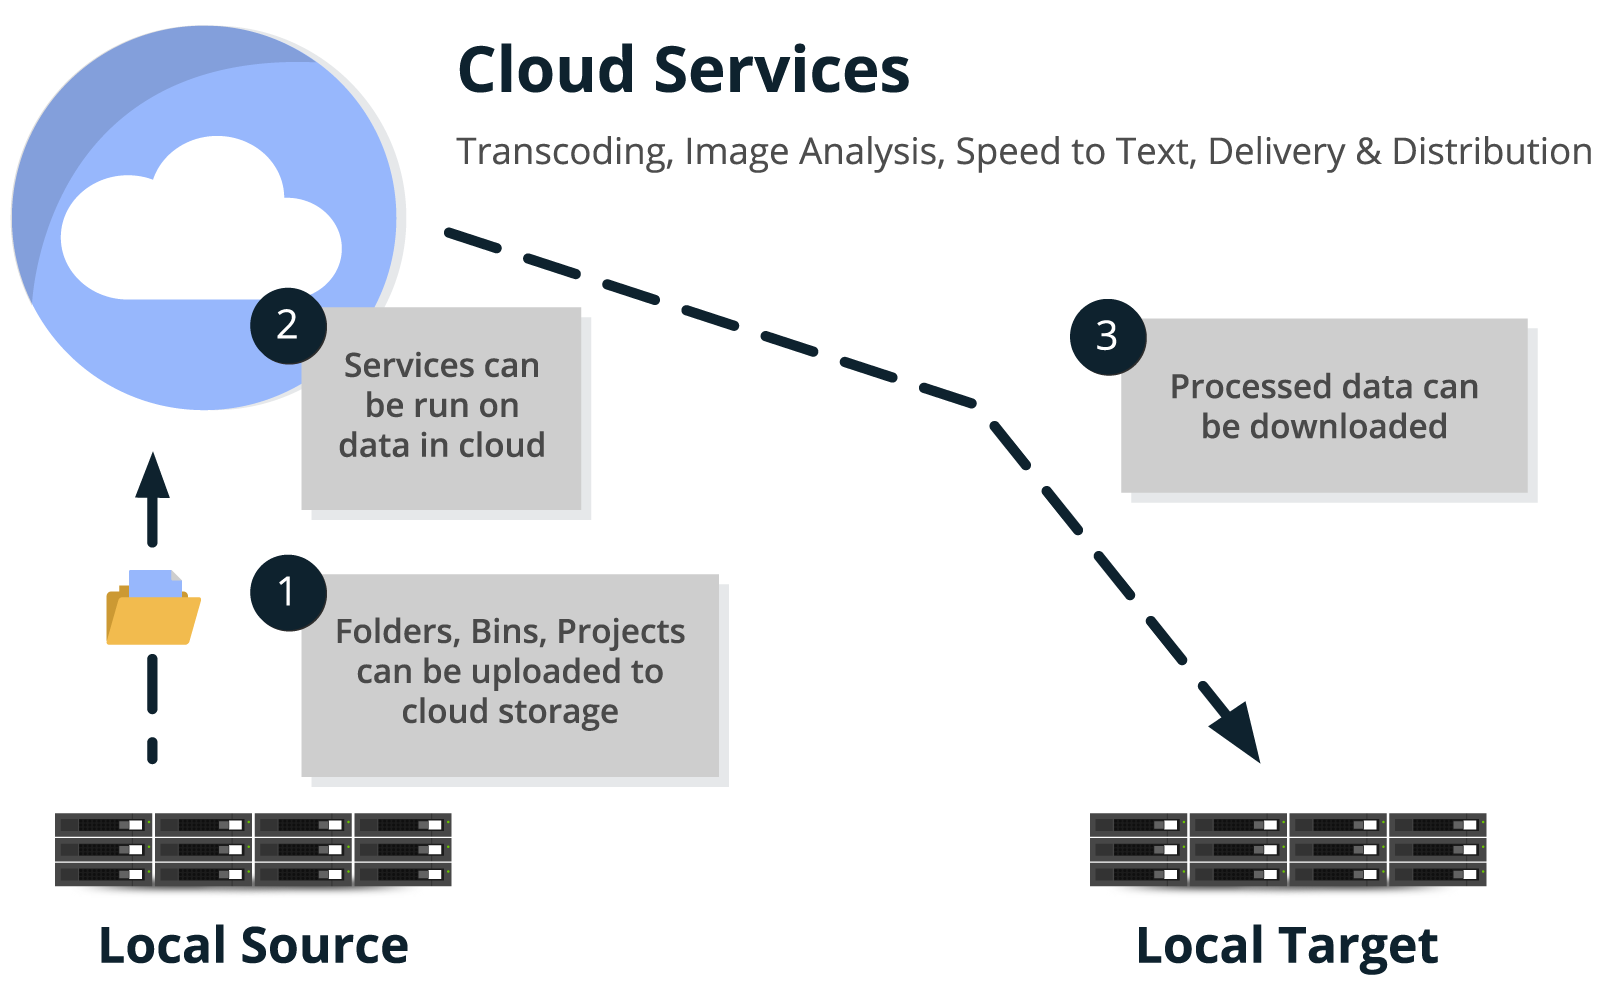 AUTOMATE DATA FOR CLOUD SERVICES